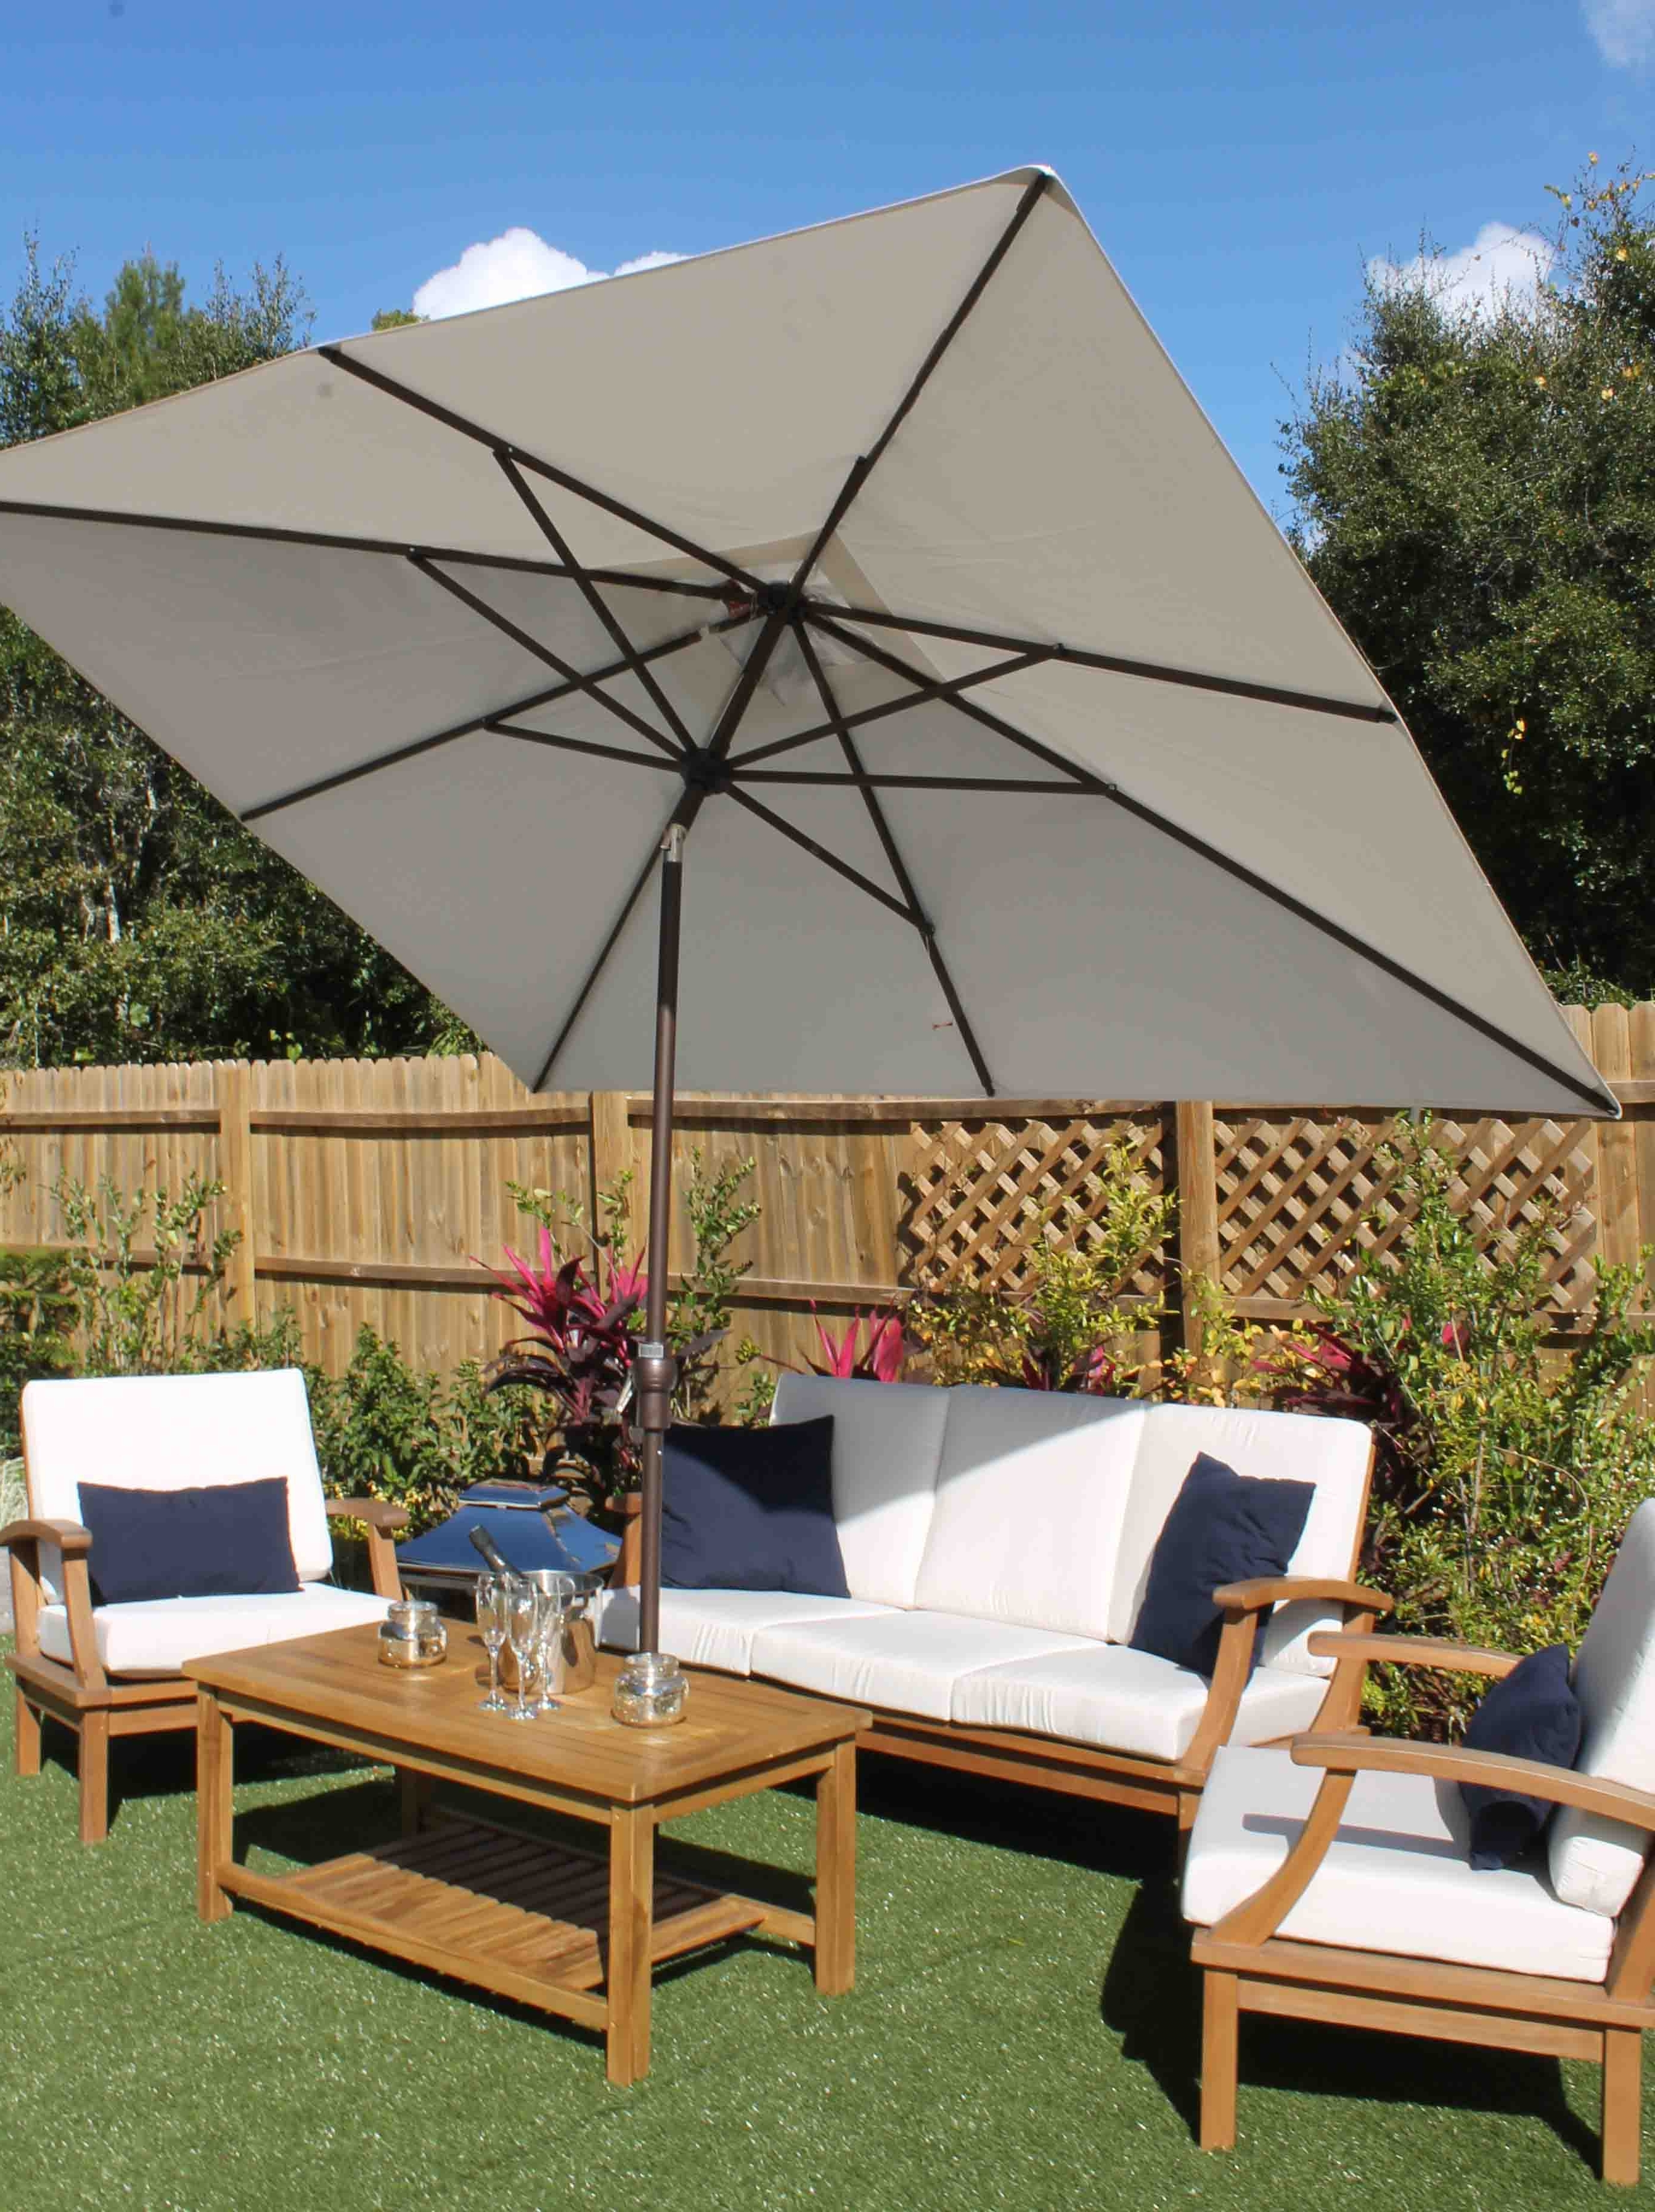 Oceanic Intended For Well Known Sunbrella Teak Umbrellas (View 2 of 20)